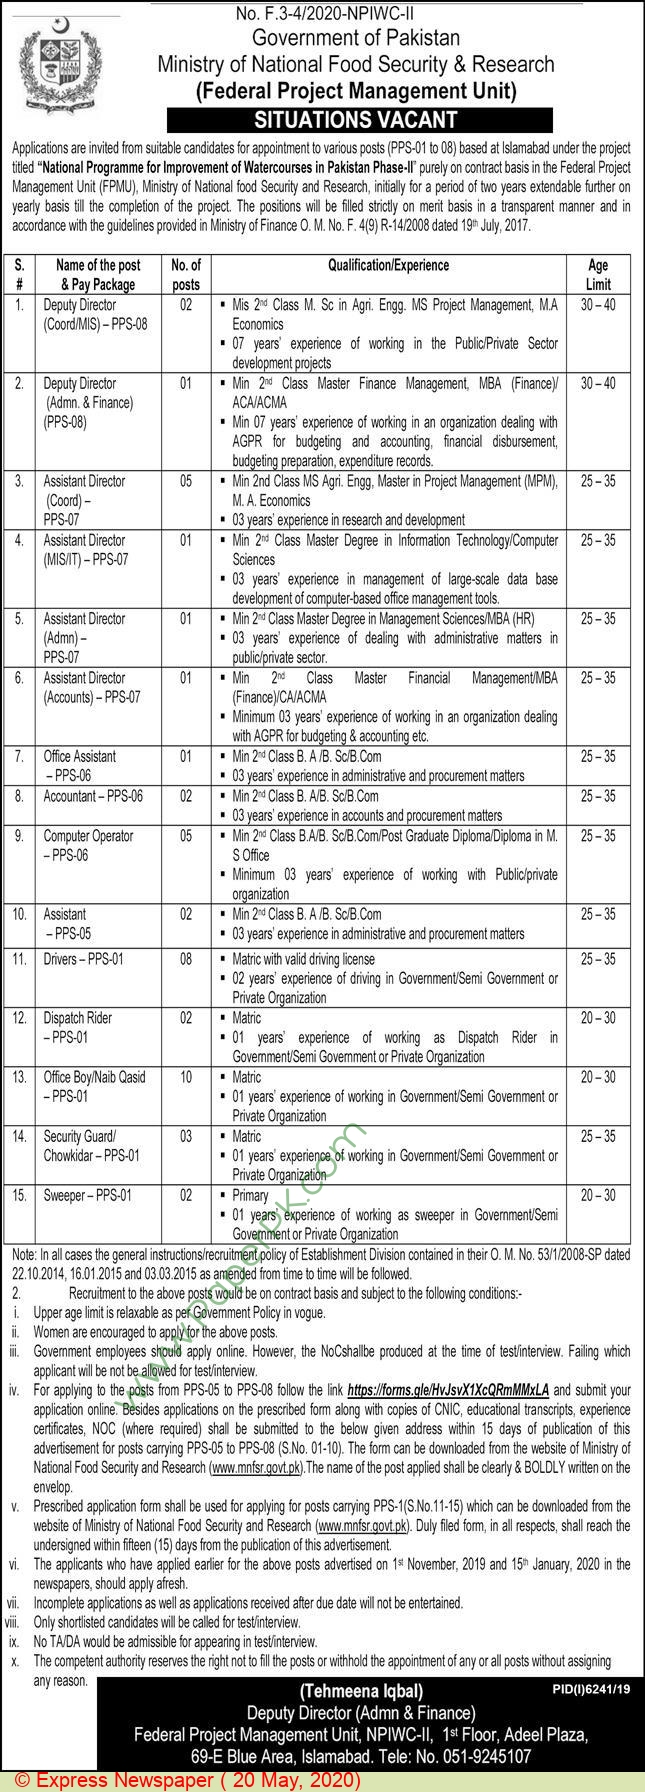 Ministry of National Food Security & Research jobs newspaper ad for Deputy Director in Lahore